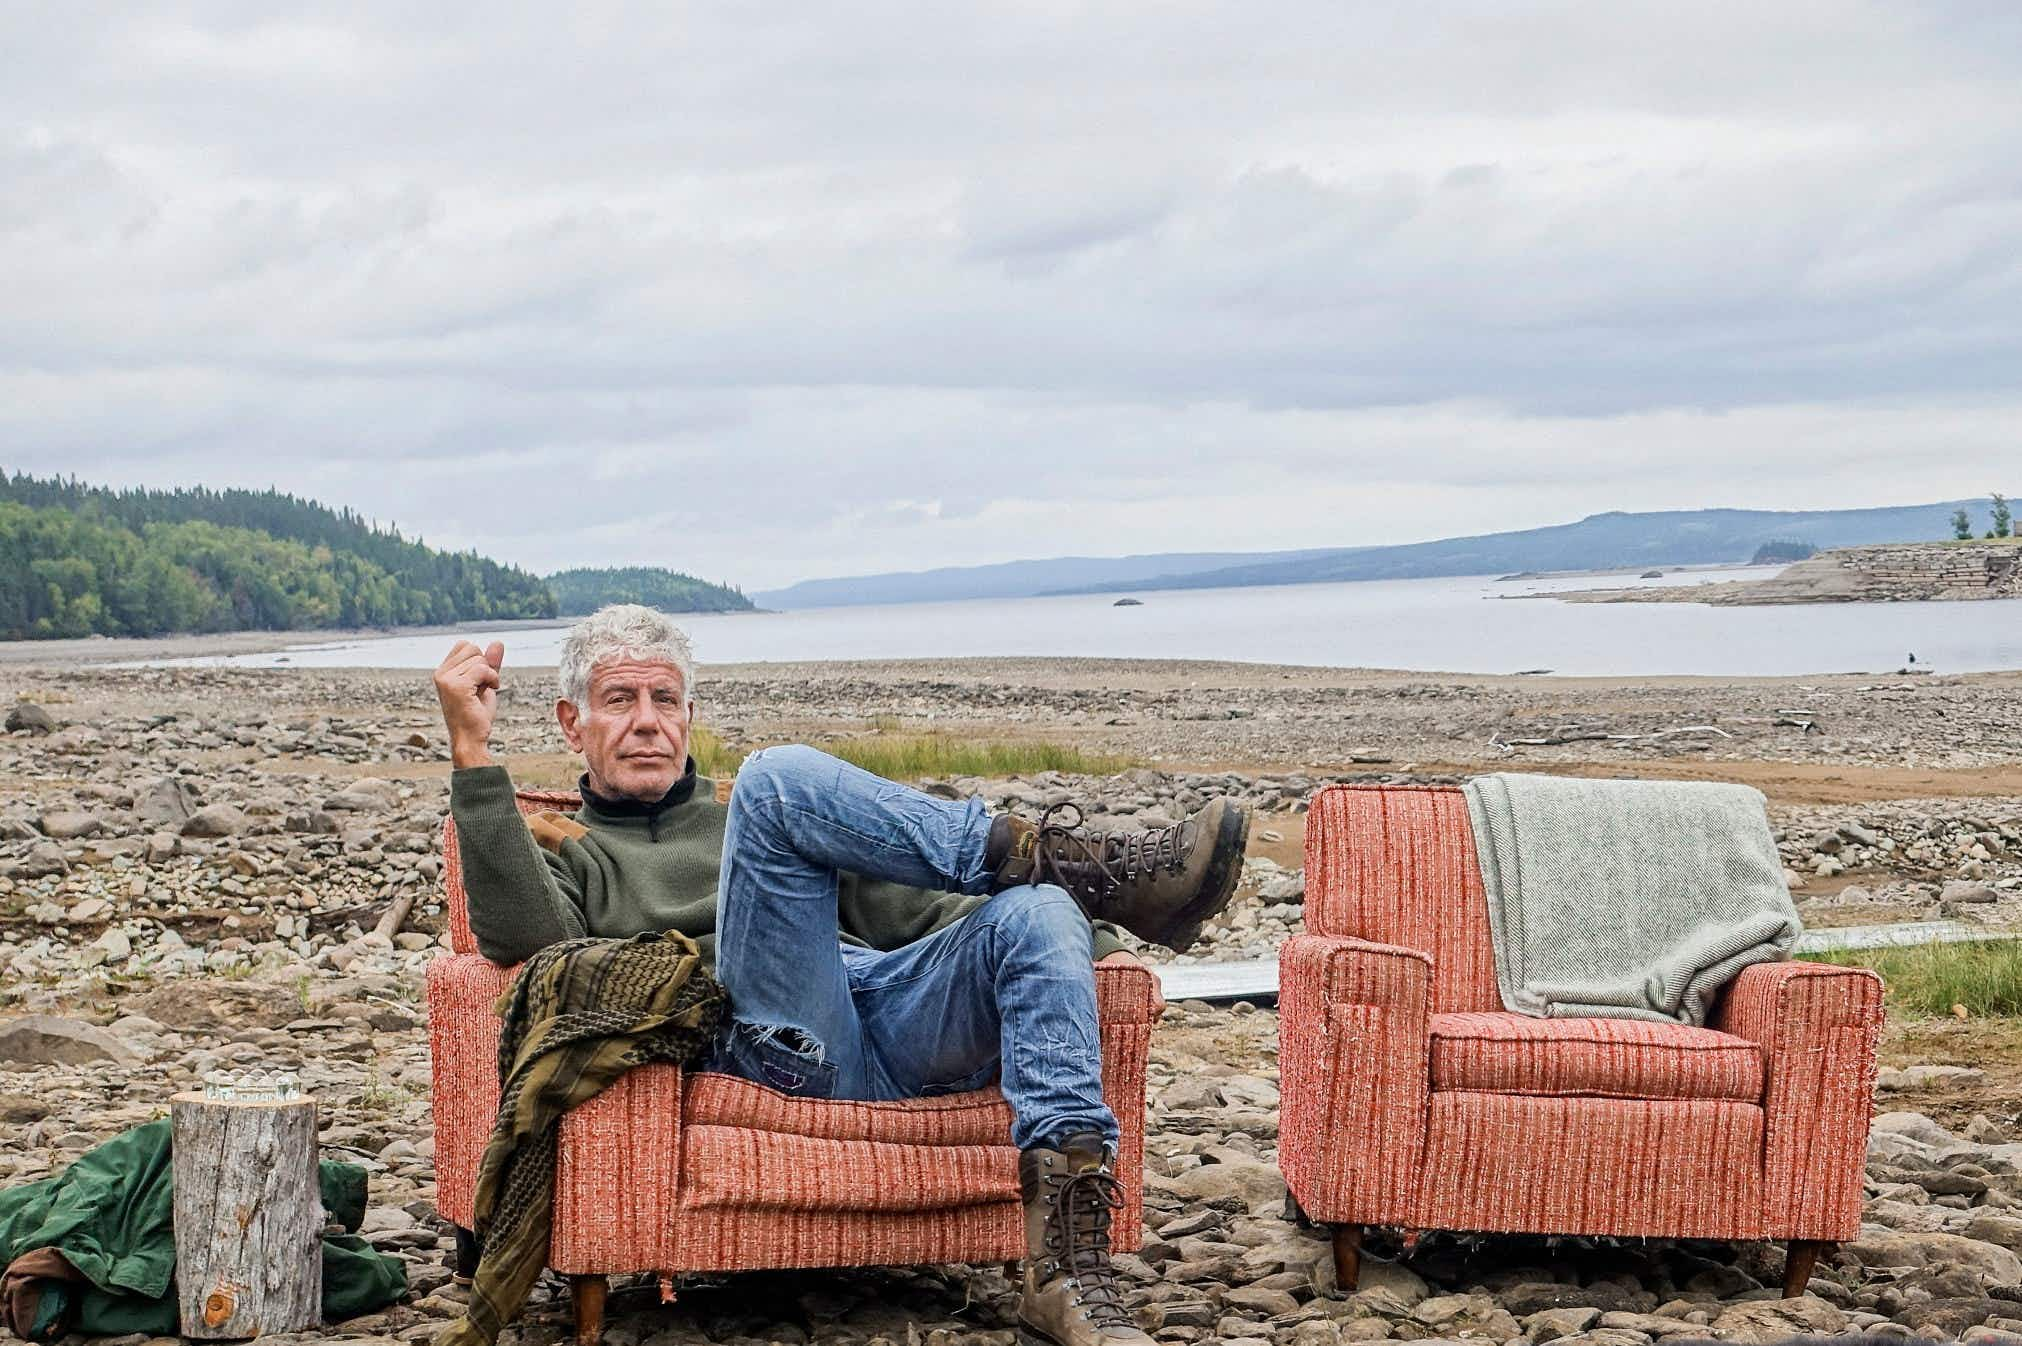 Viewers get to watch Anthony Bourdain: Parts Unknown on Netflix for 'months to come'